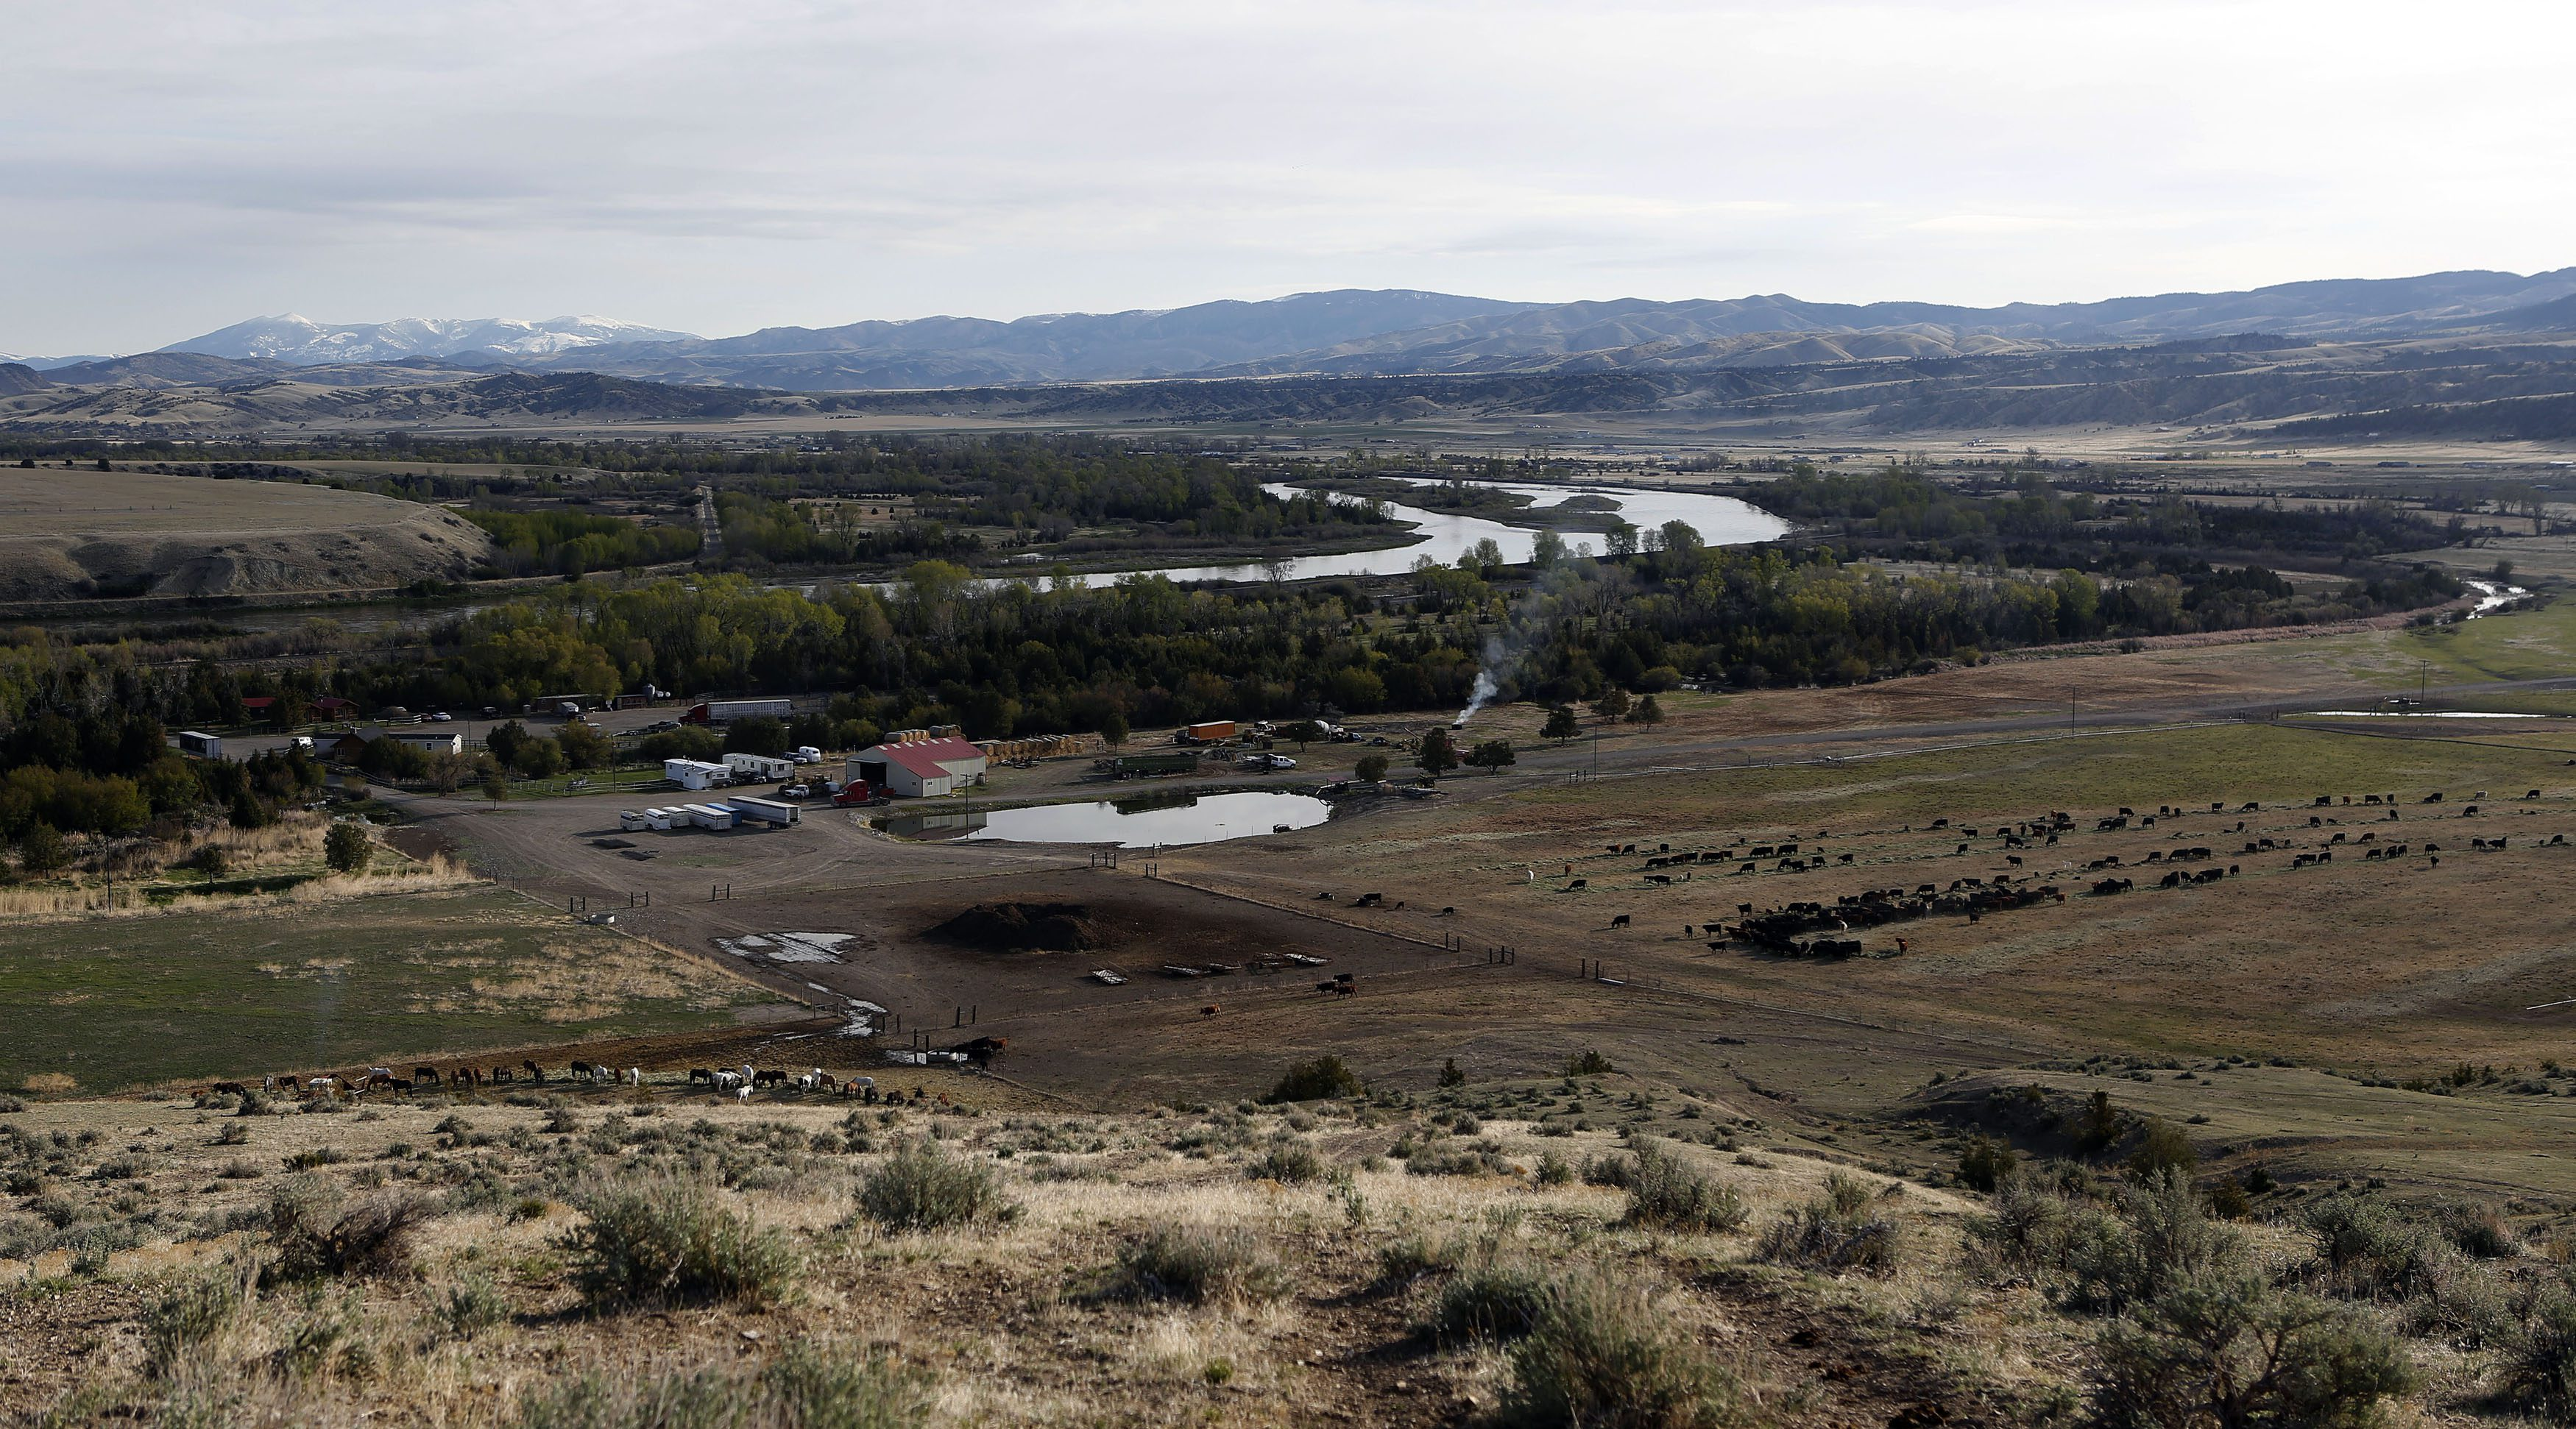 Montana's size and sparse population makes politics different.